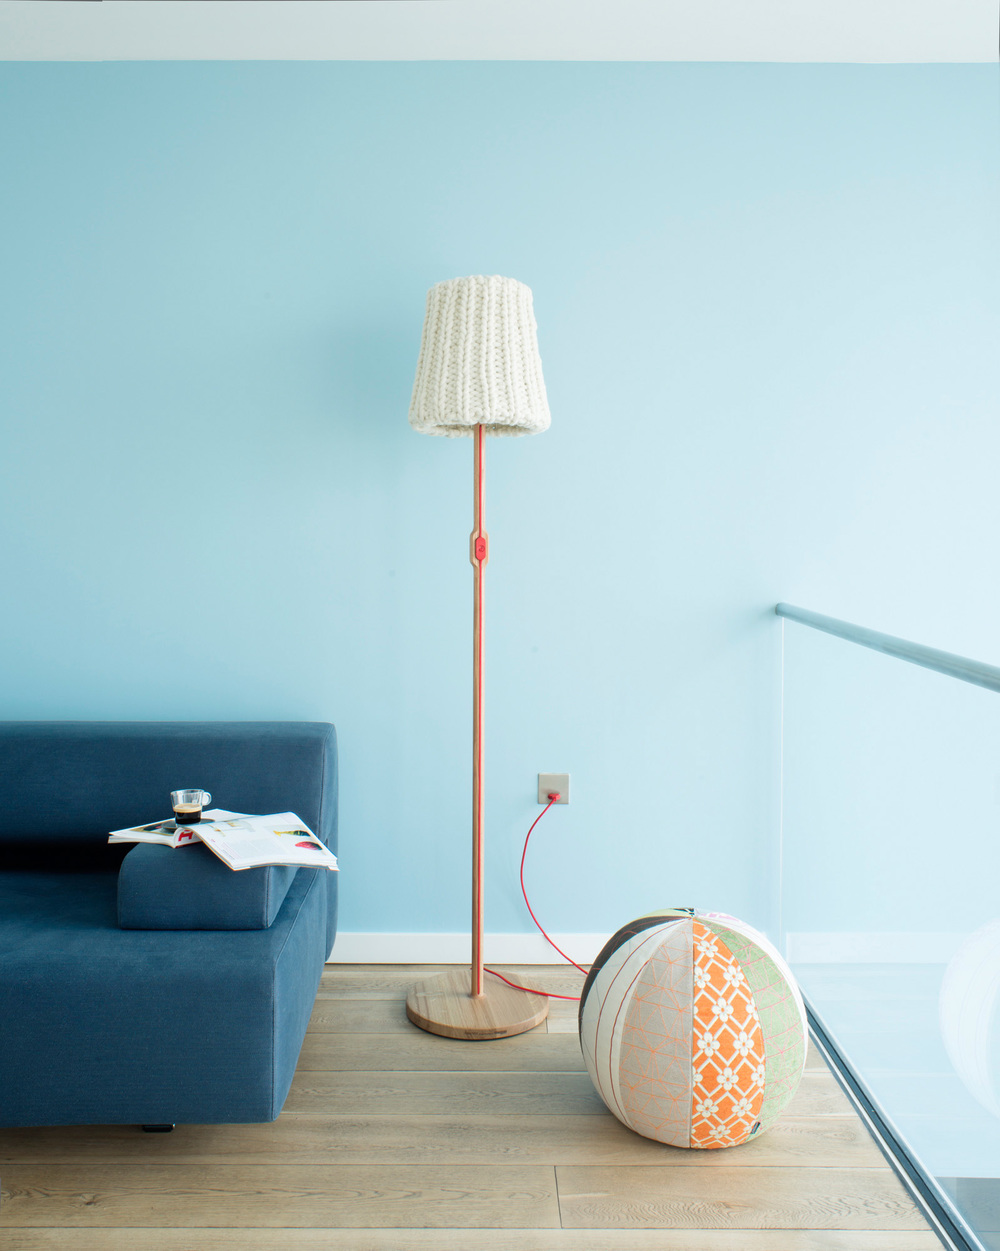 Granny floor lamp by Casamania, Joy pouf by Moroso. Photography Justin Barton